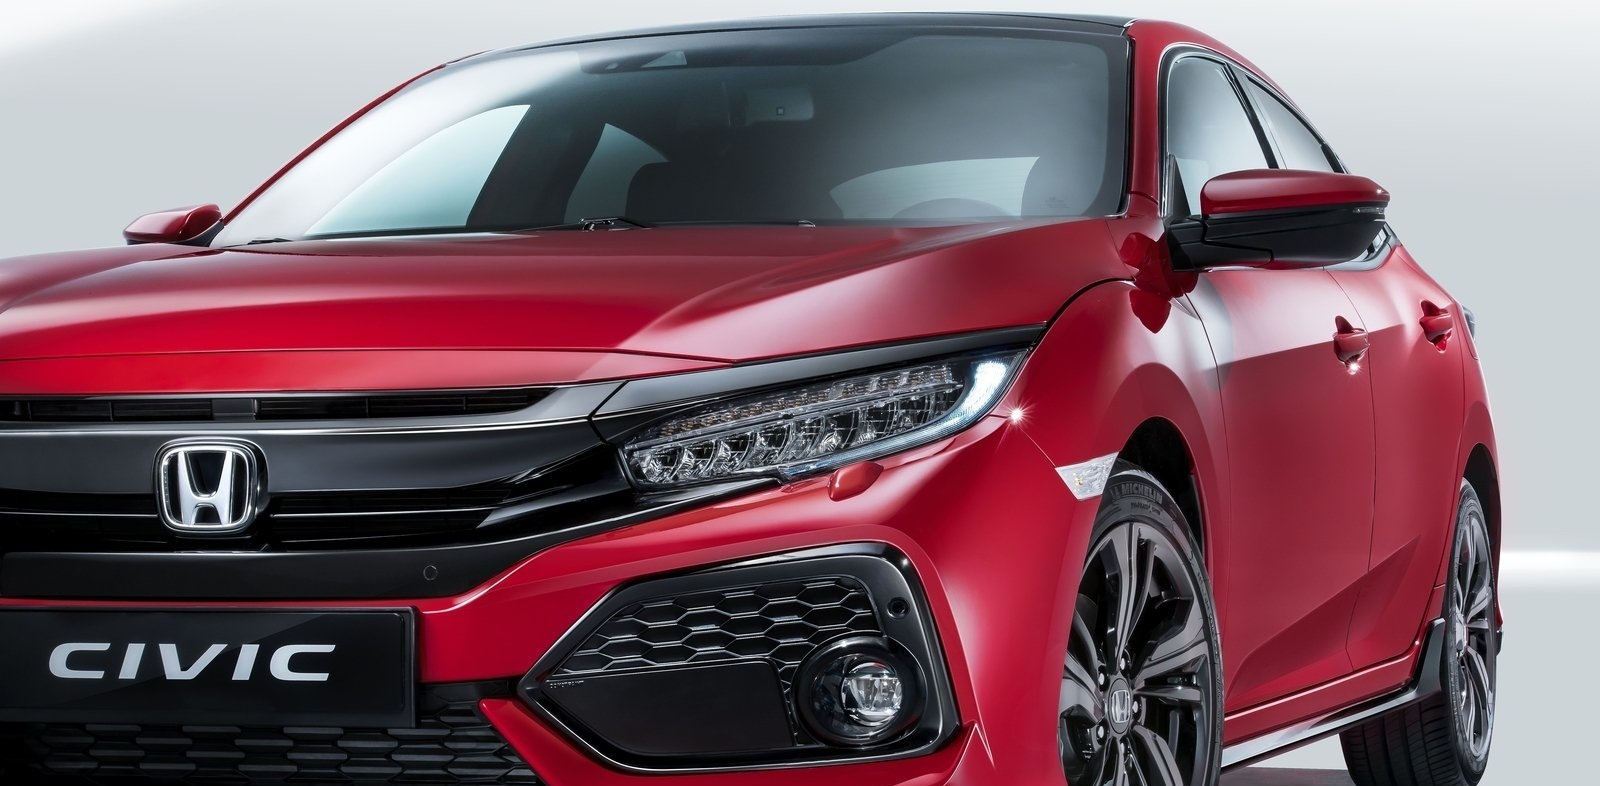 new-2018-honda-civic-india-launch-date-price - bharathautos